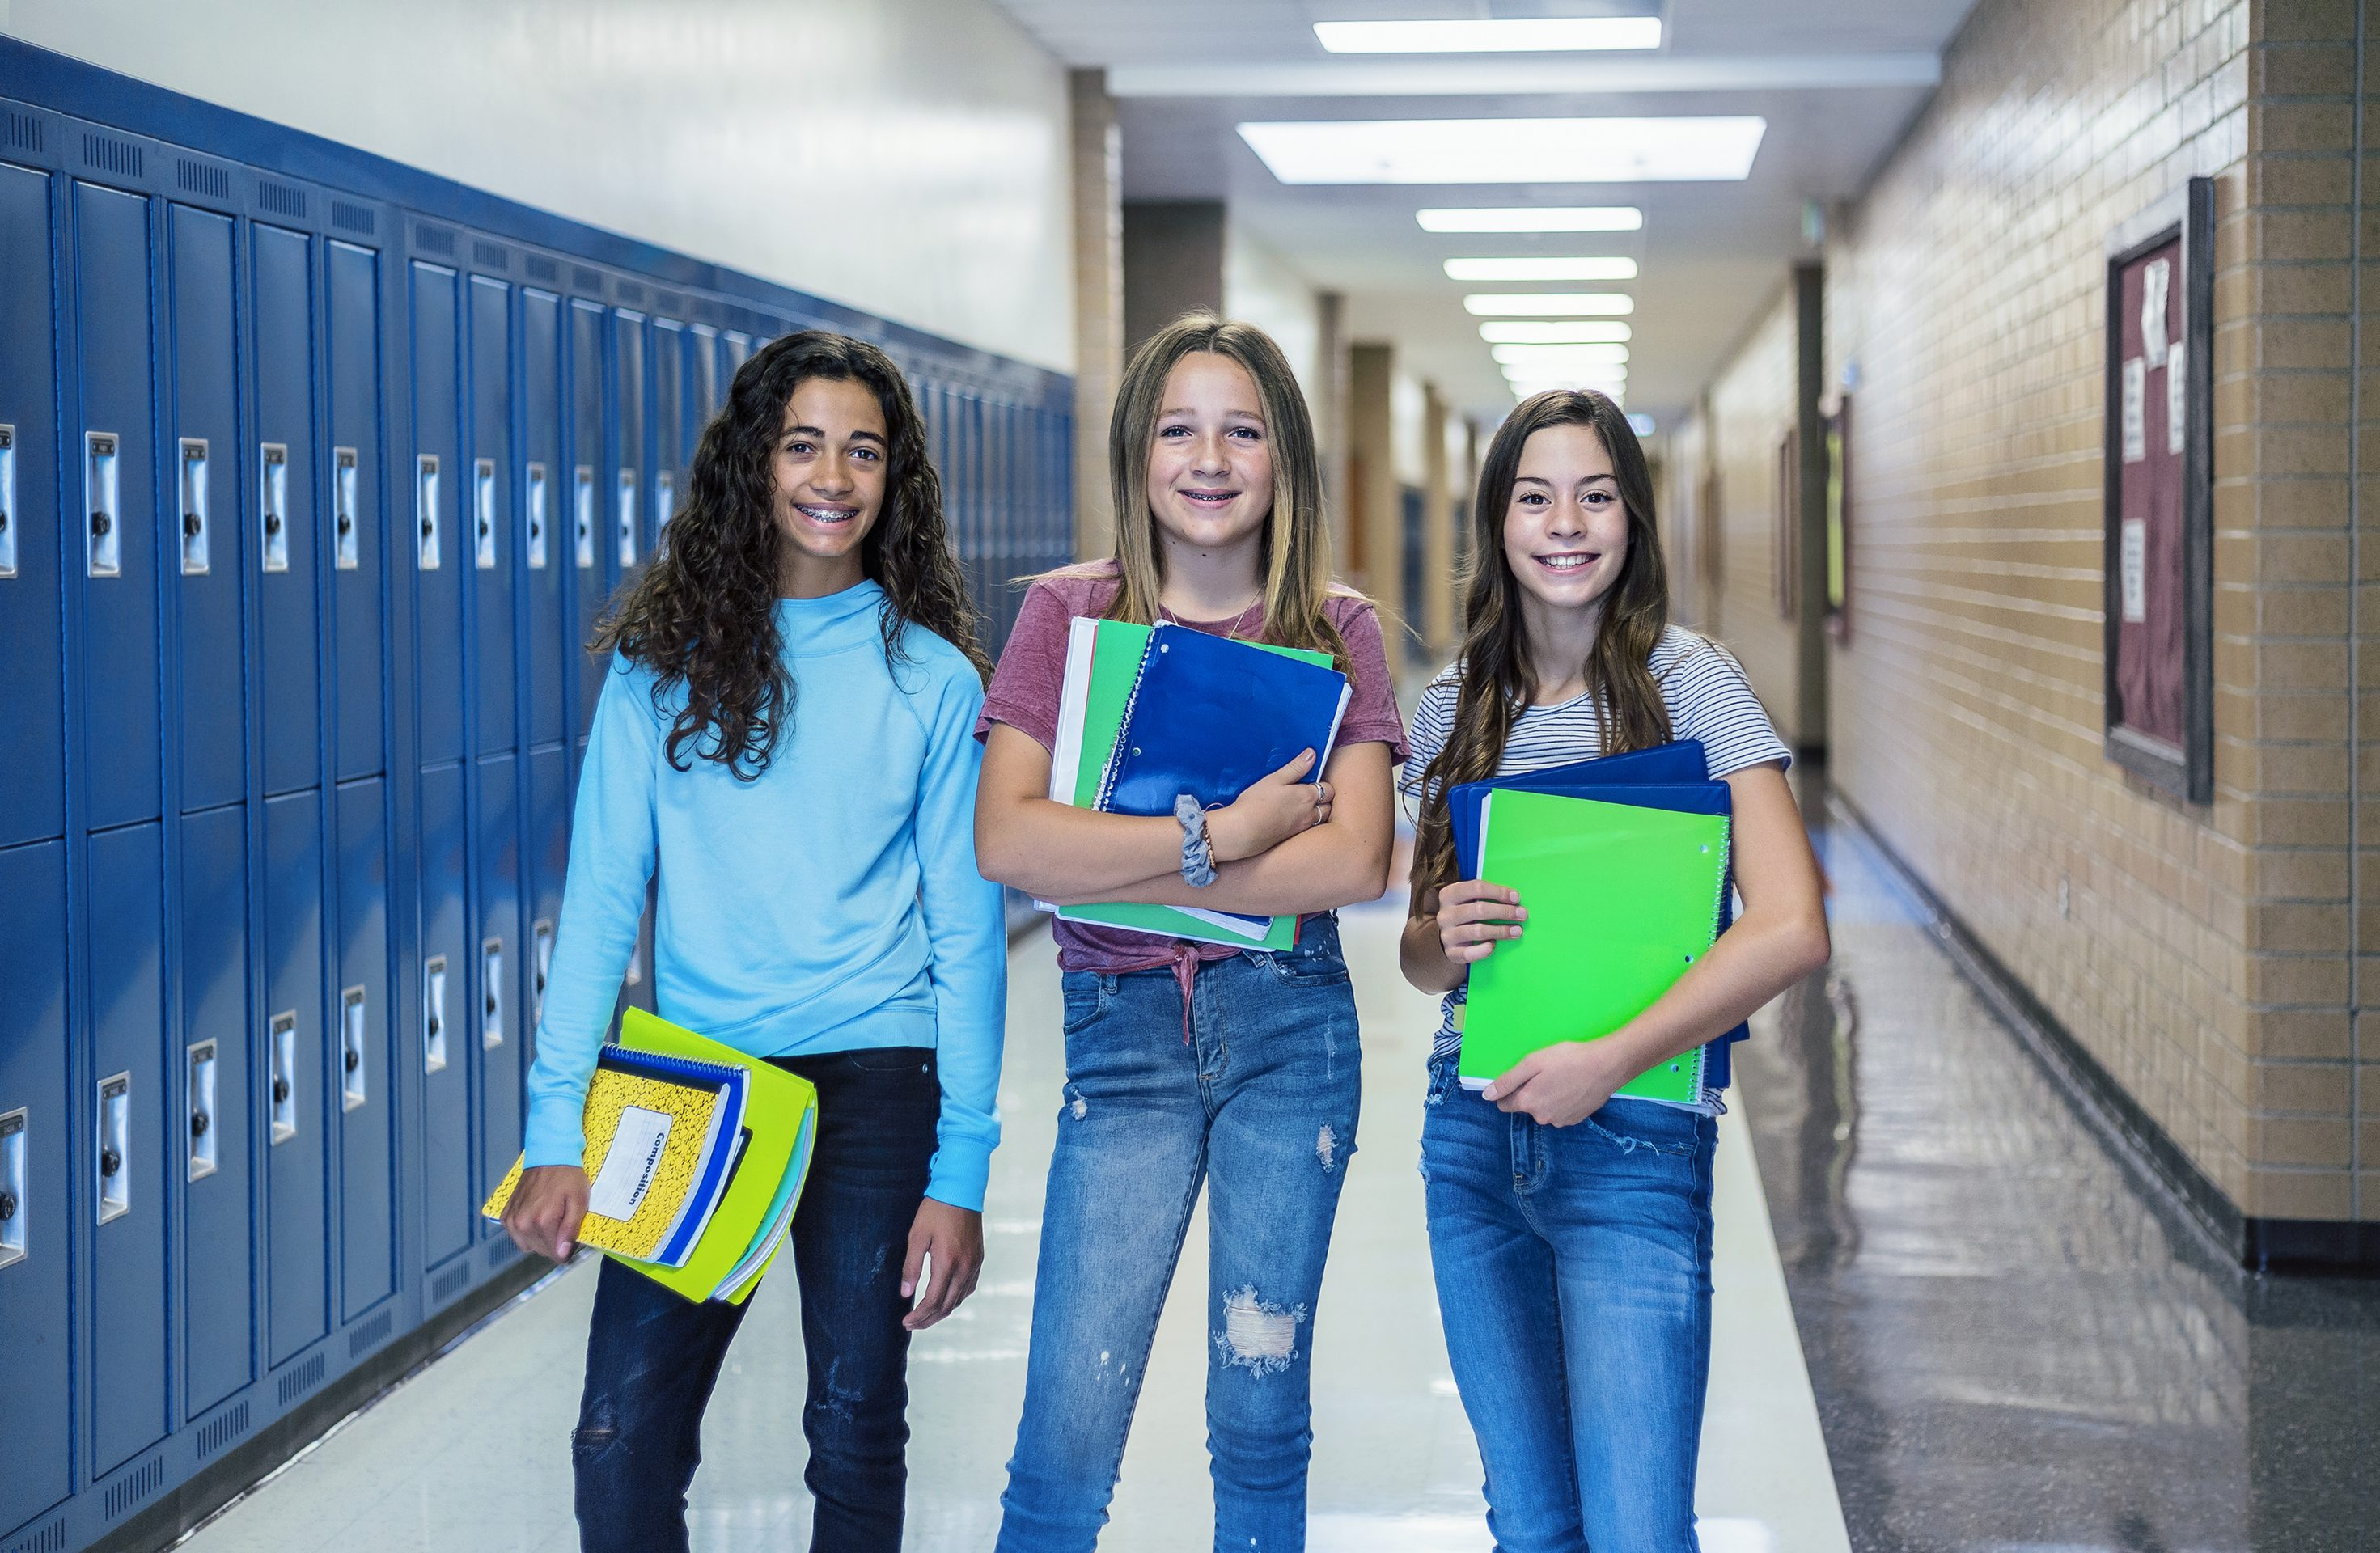 Social Emotional Learning Curriculum for Middle School